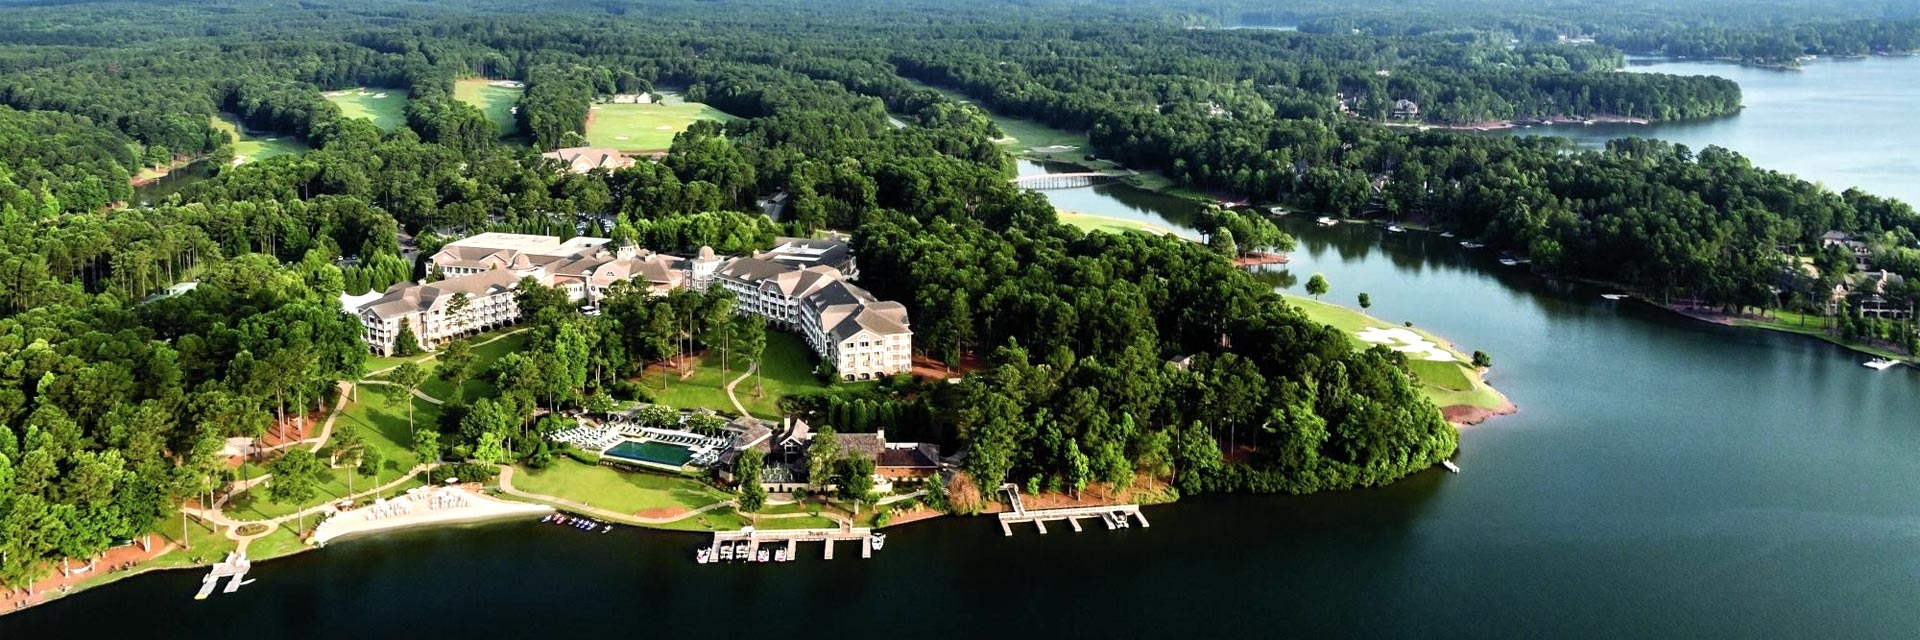 Reynolds Lake Oconee Golf Package: Golf Zoo Exclusive - starting at $299 per person / per night!